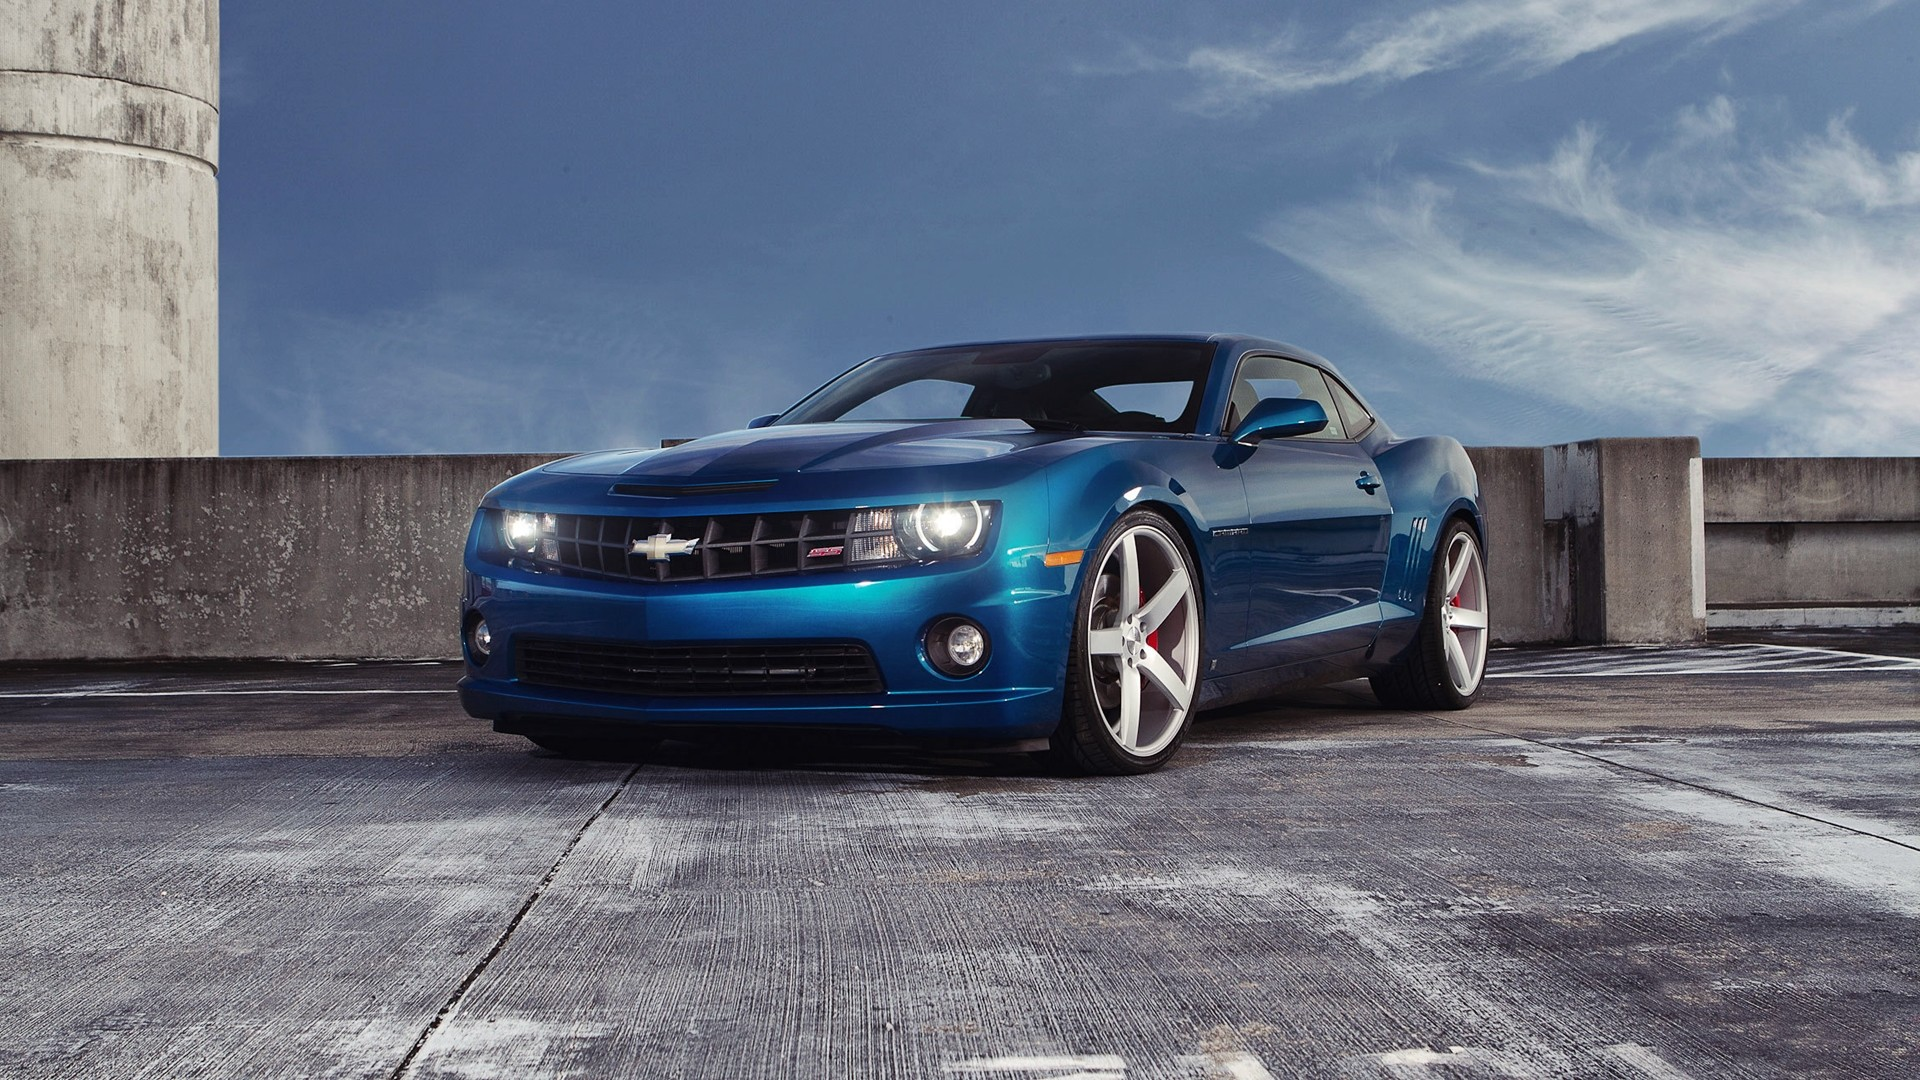 Gallery For gt Blue Camaro Wallpaper Hd 1920x1080